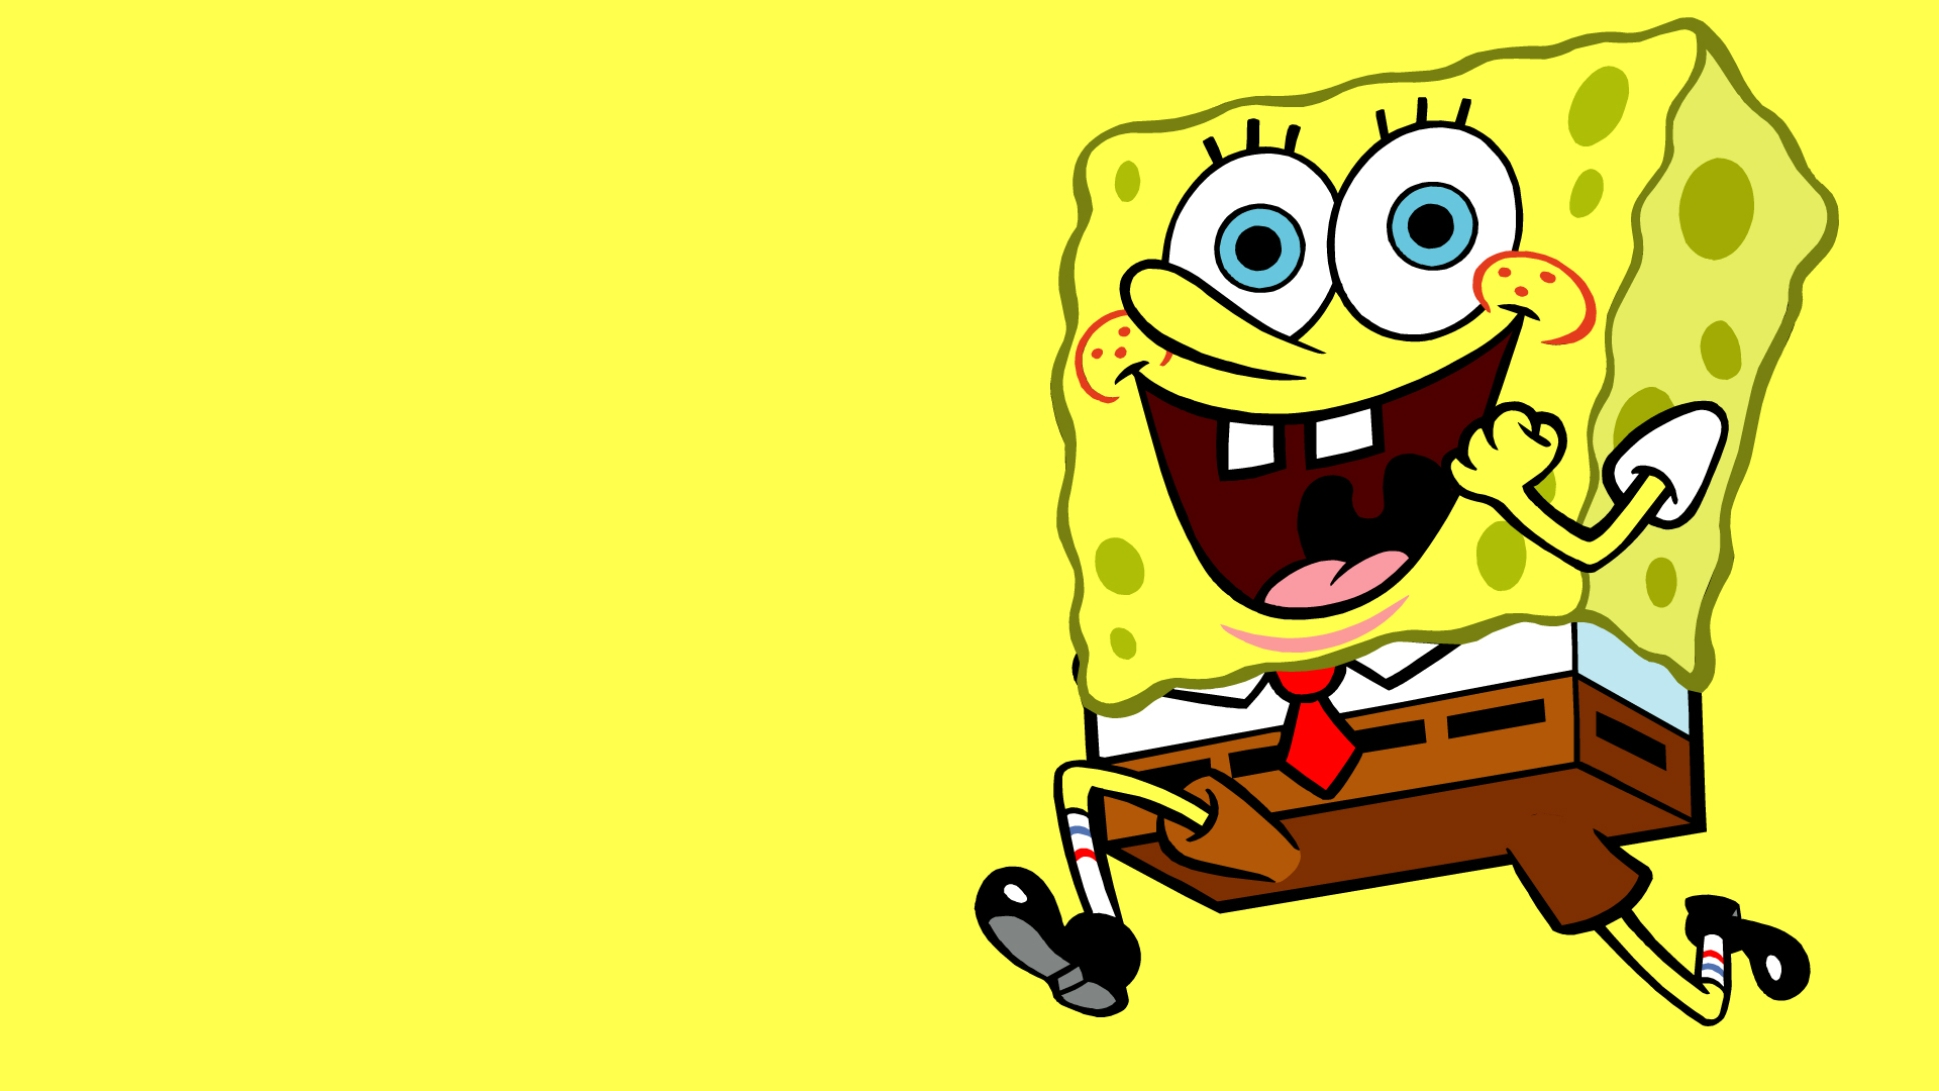 1939x1091 Clipart Pants Spongebob Square